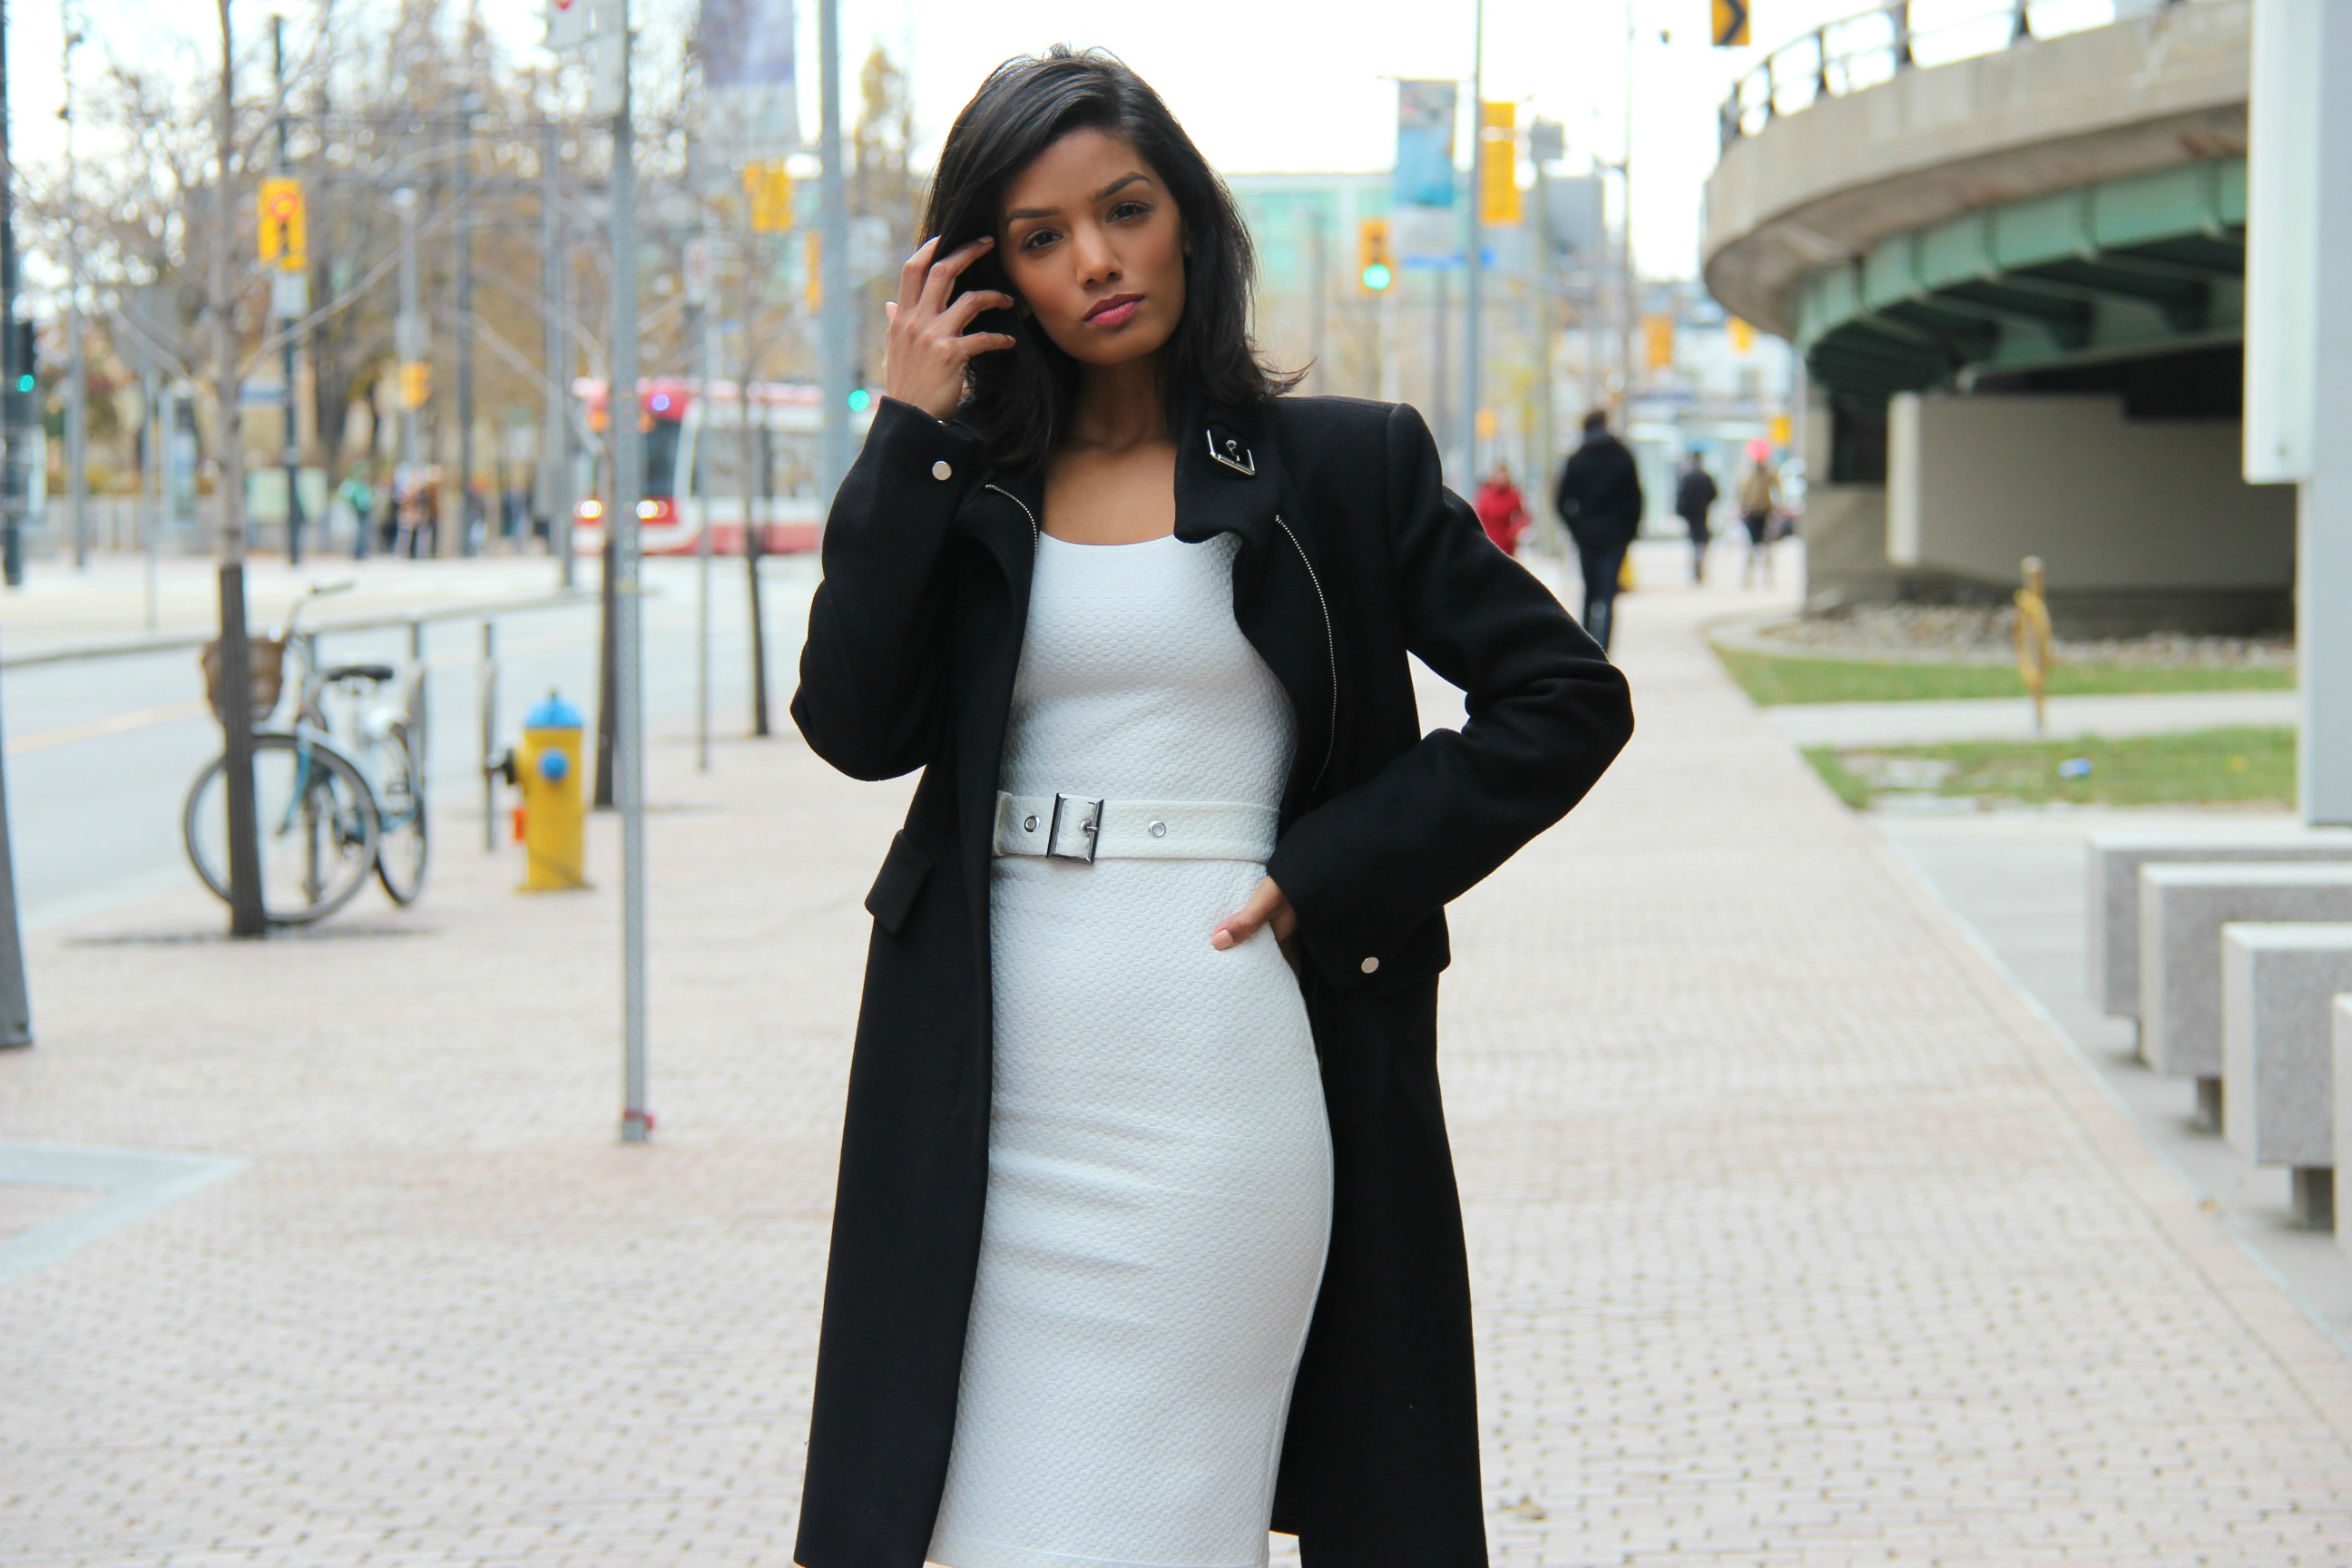 DIY Fitted White BodyCon Dress With Belt. Sharadha wearing black winter coat over top.